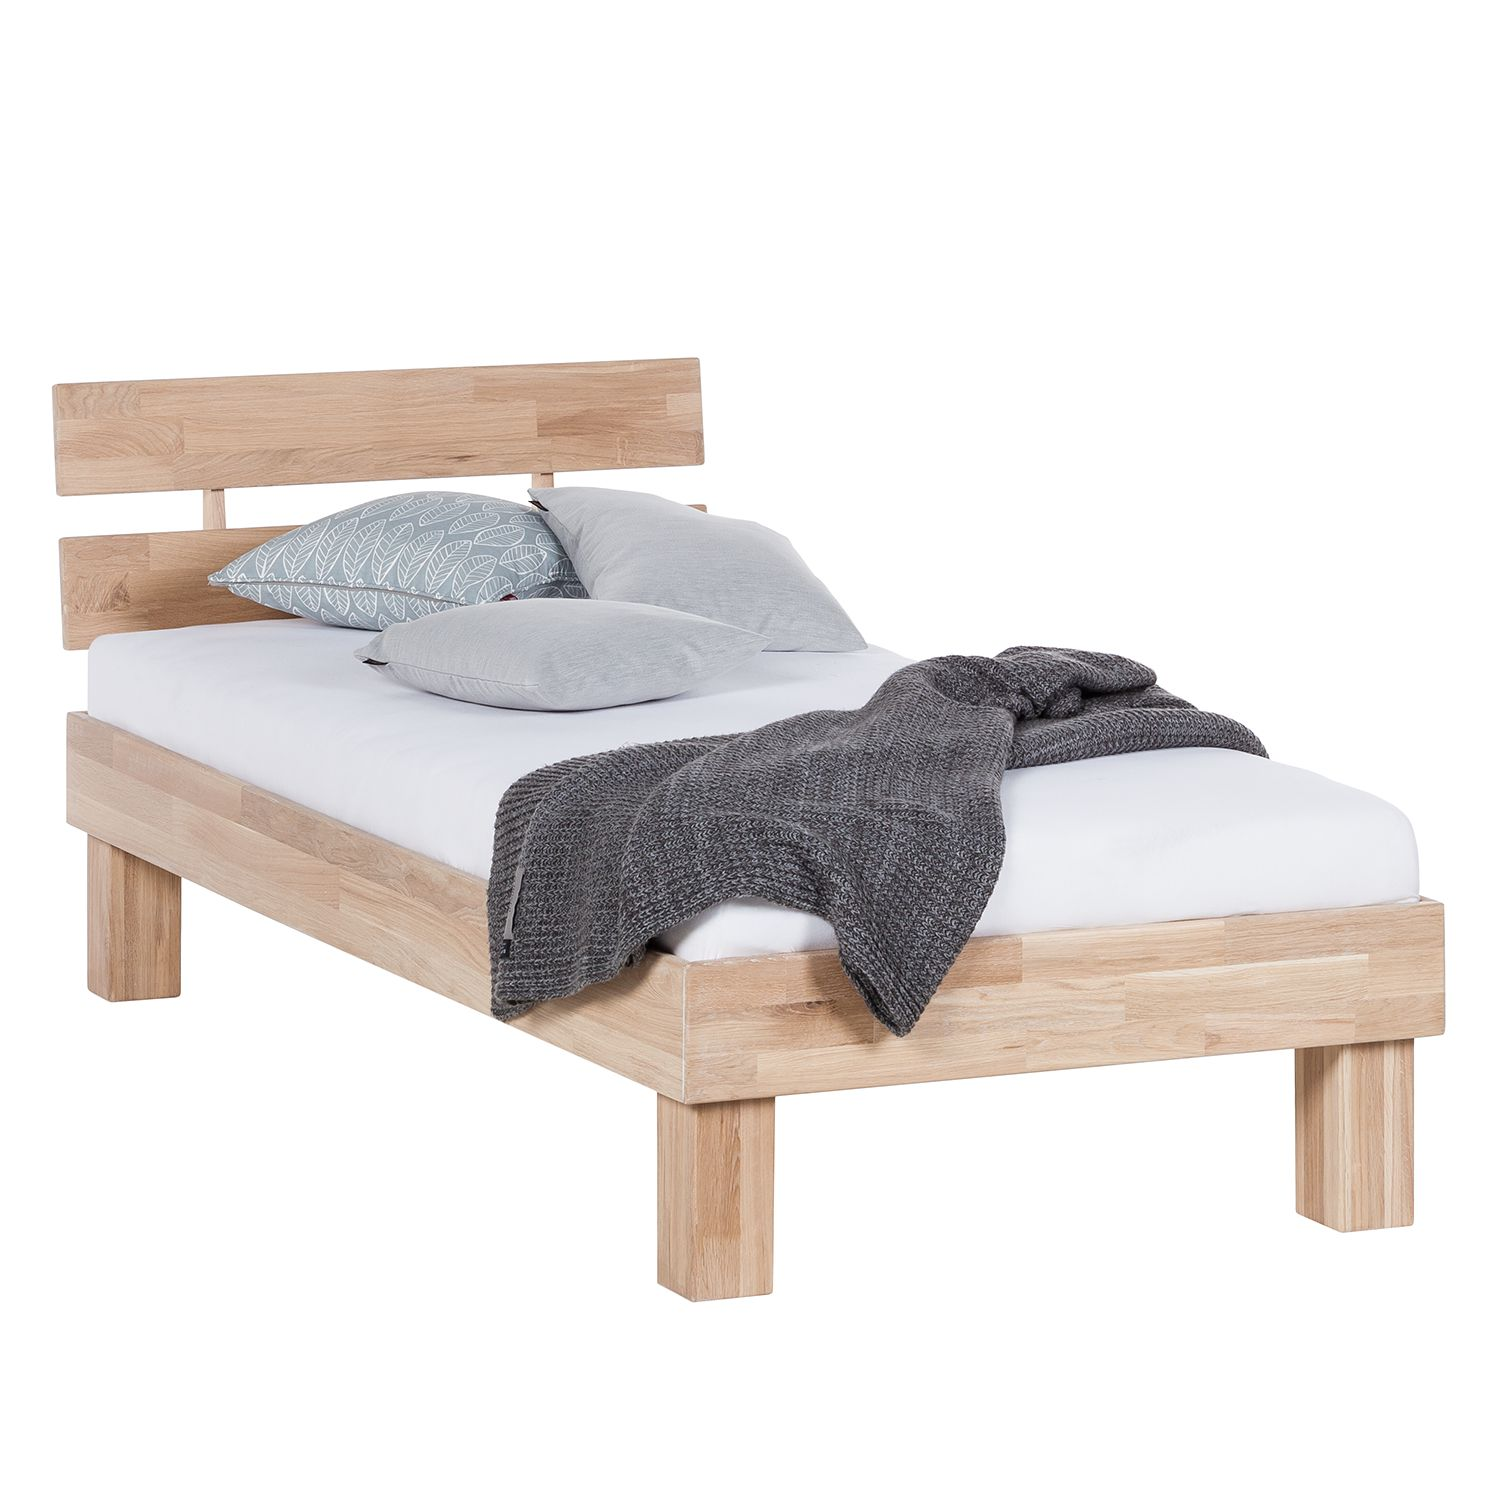 Massief houten bed AresWOOD, Ars Natura